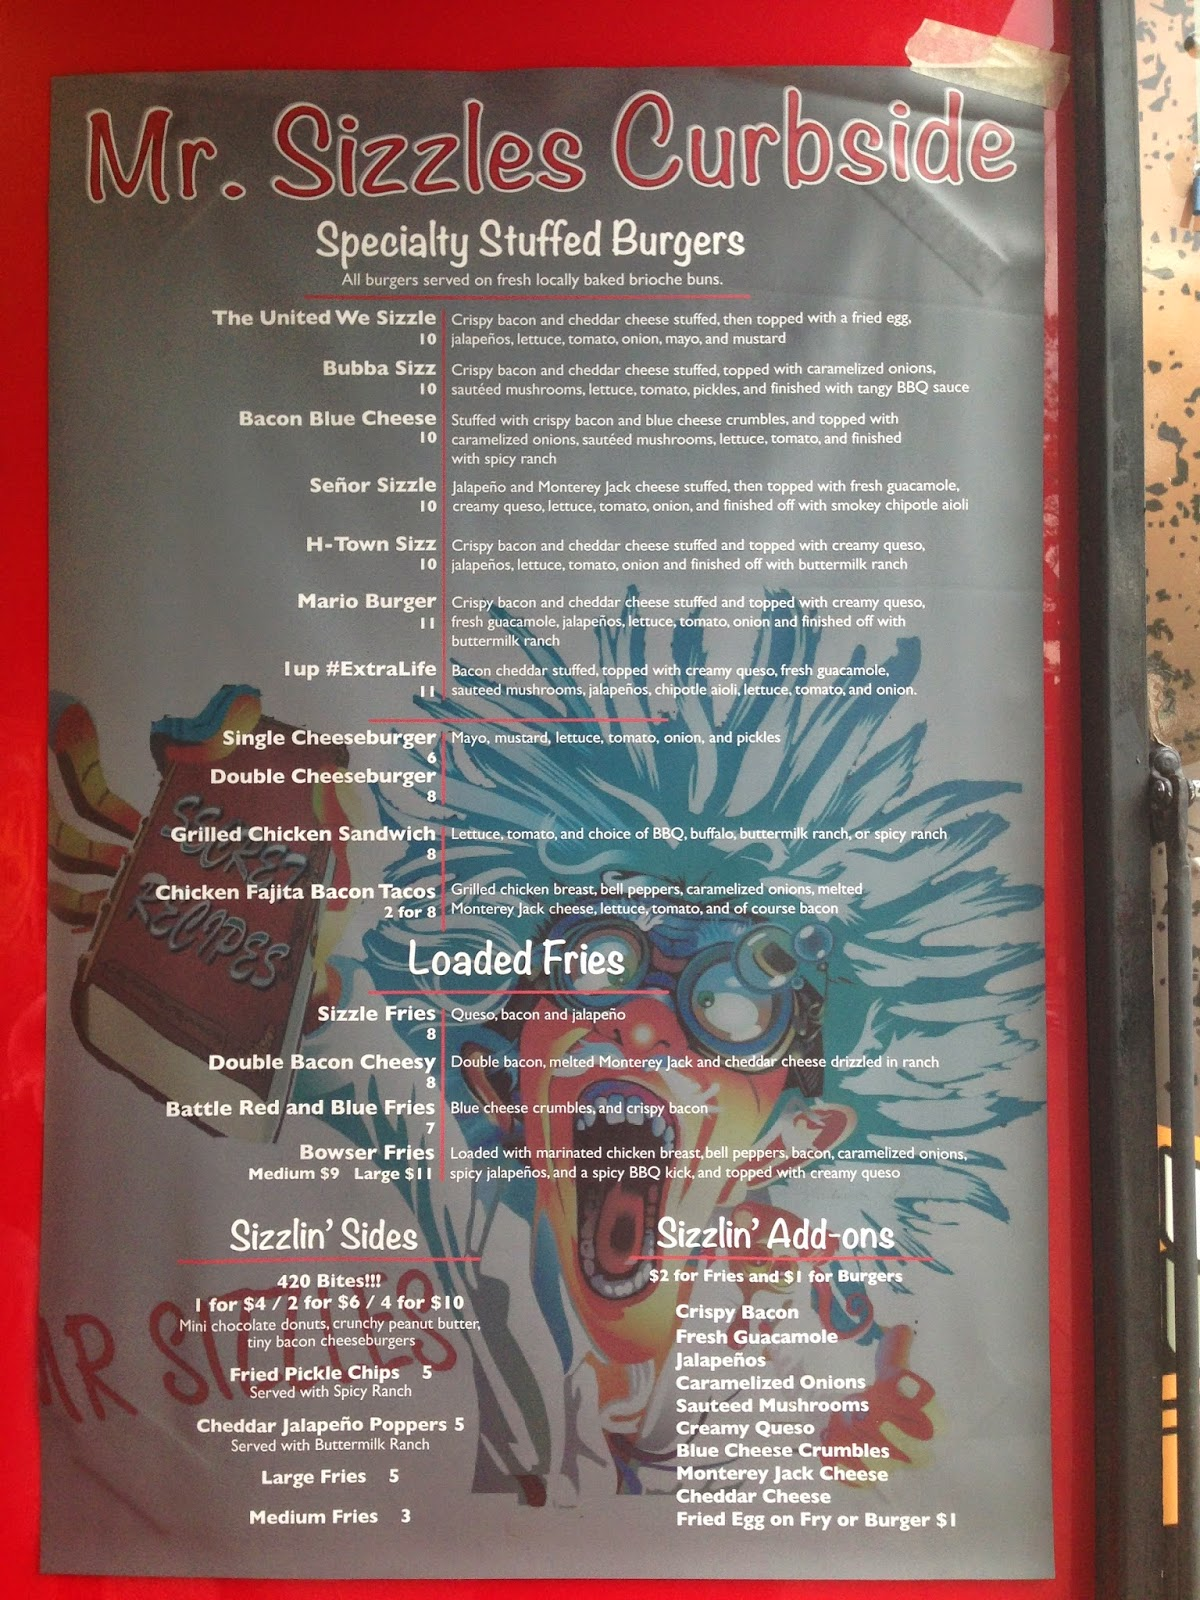 Mr. Sizzles Curbside Food Truck Menu